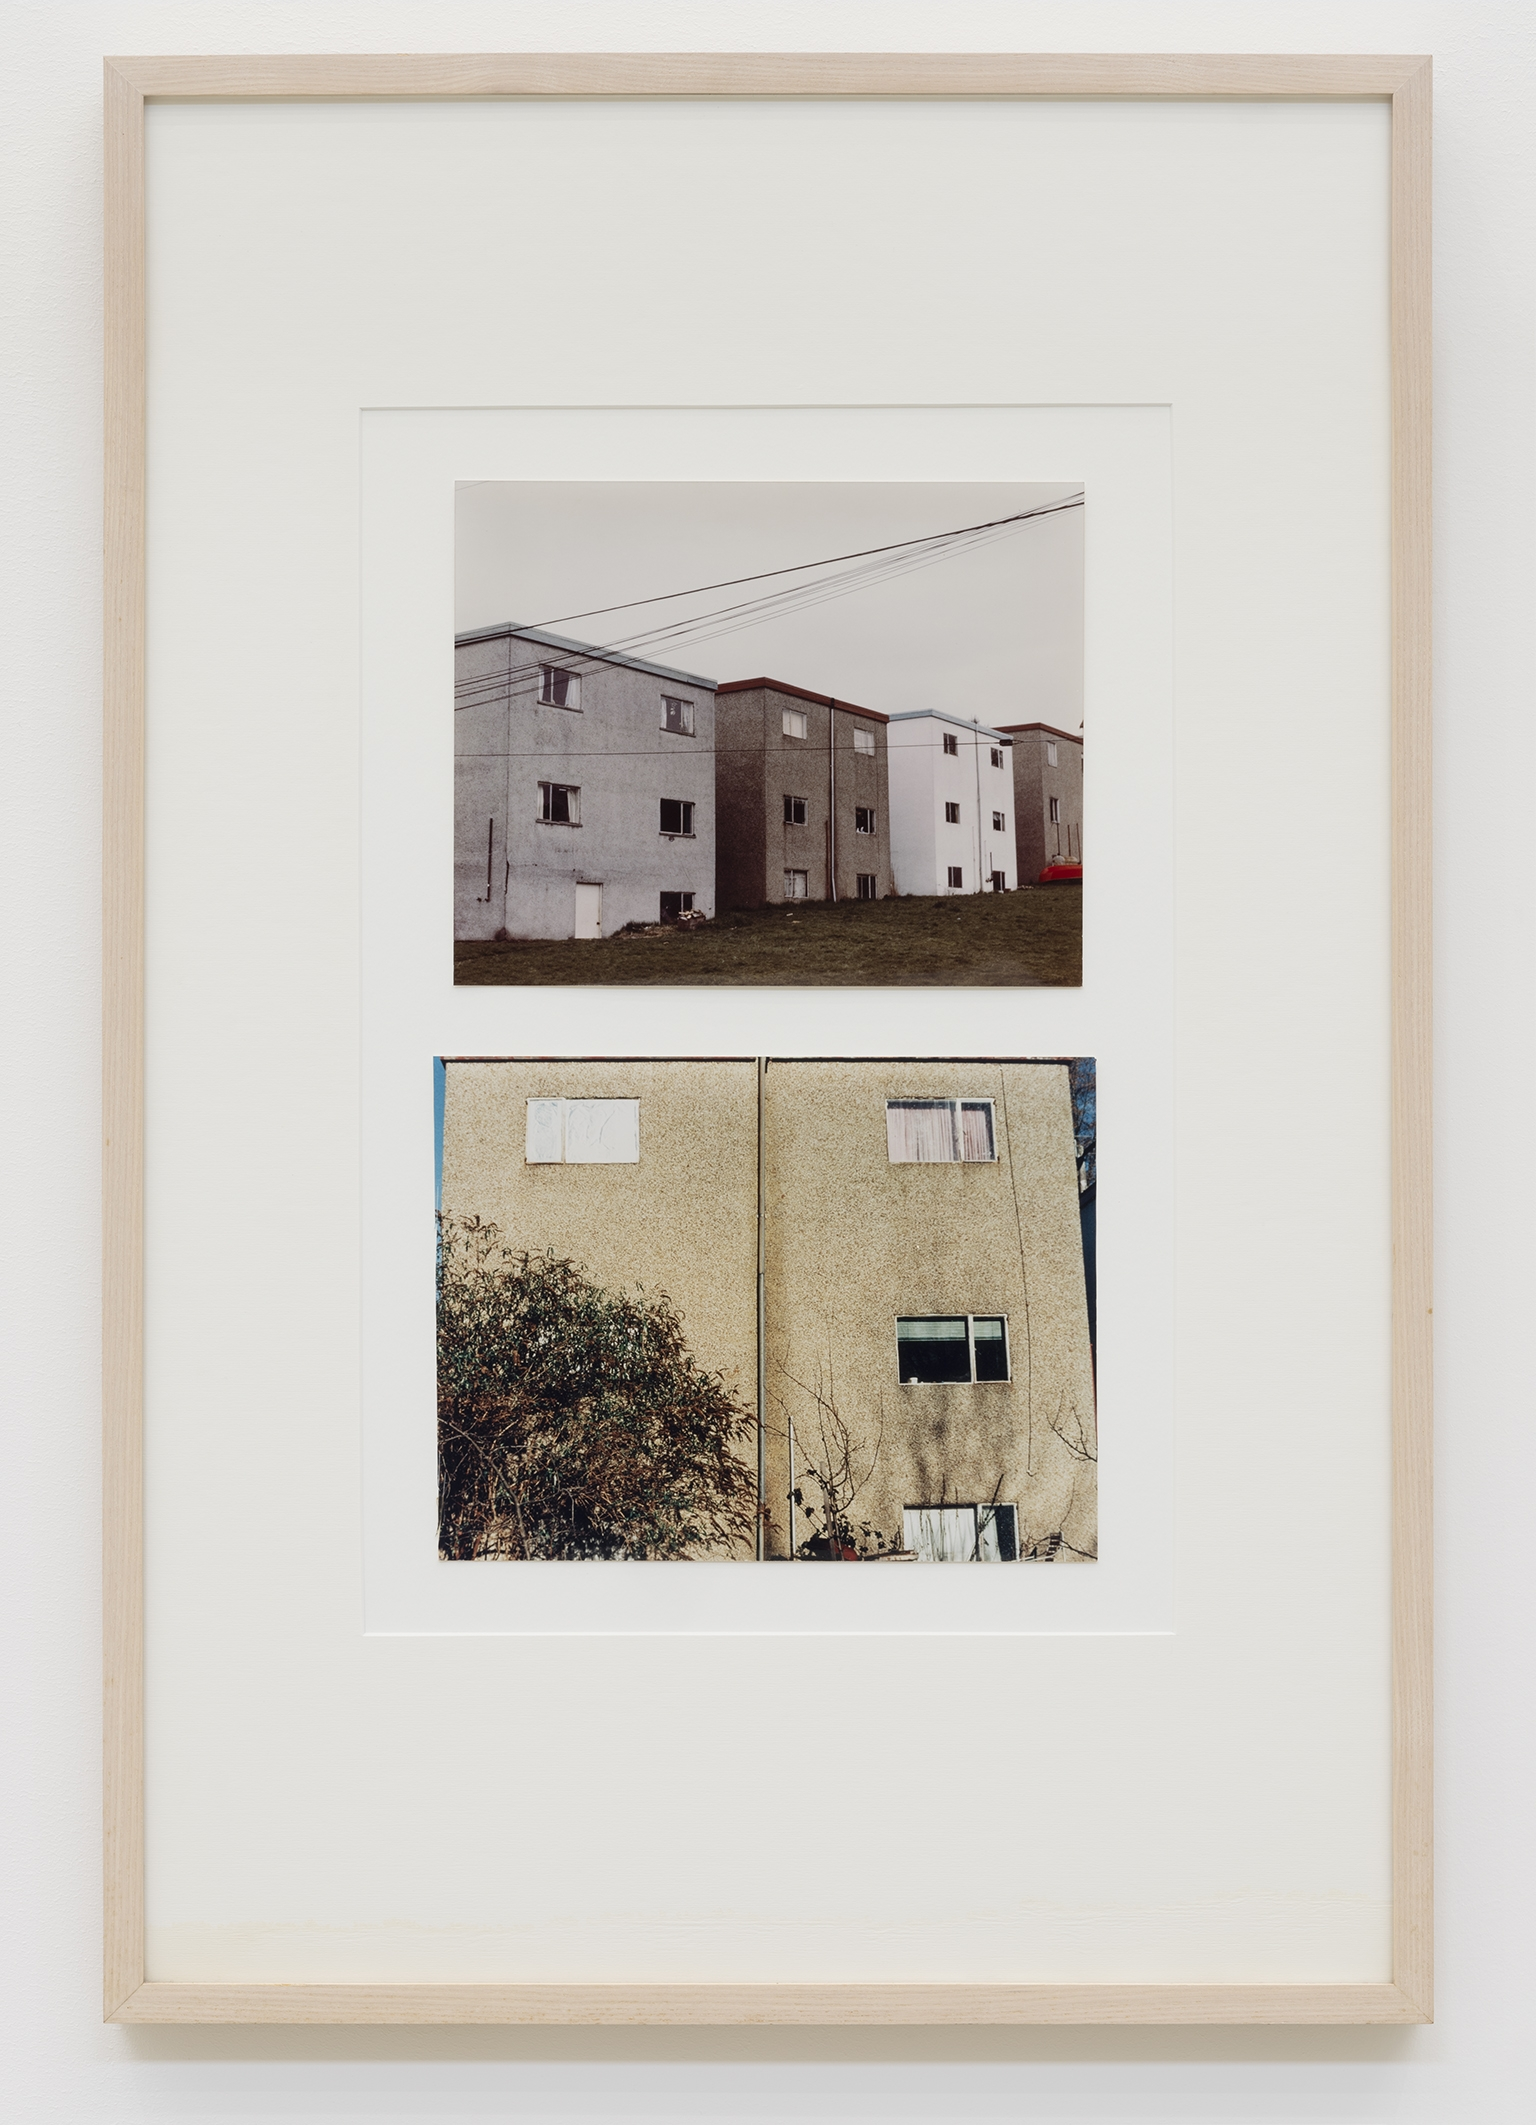 Dan Graham, Untitled (Homes for America), 1966, colour photographs, 31 x 21 in. (79 x 53 cm) by